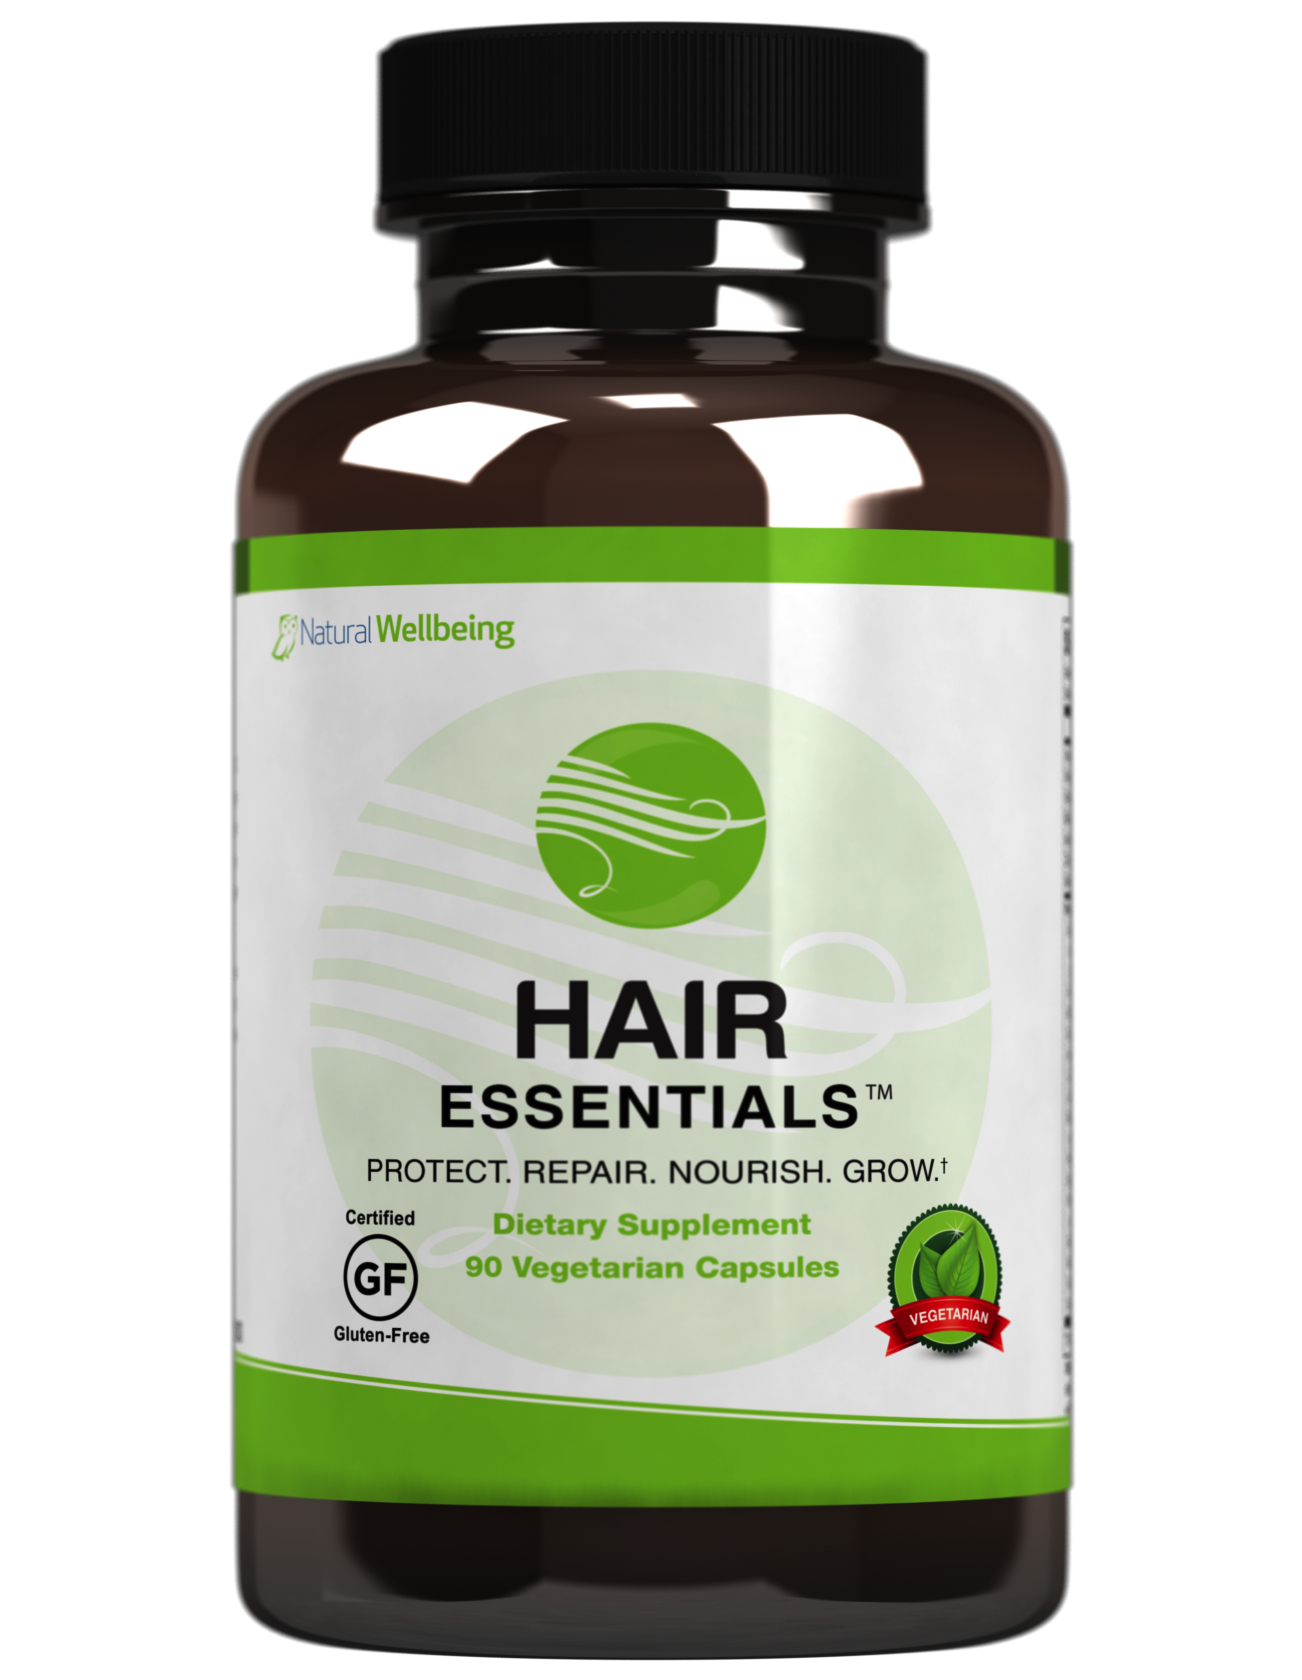 Hair Essentials, $39.99 @hairessentials.com